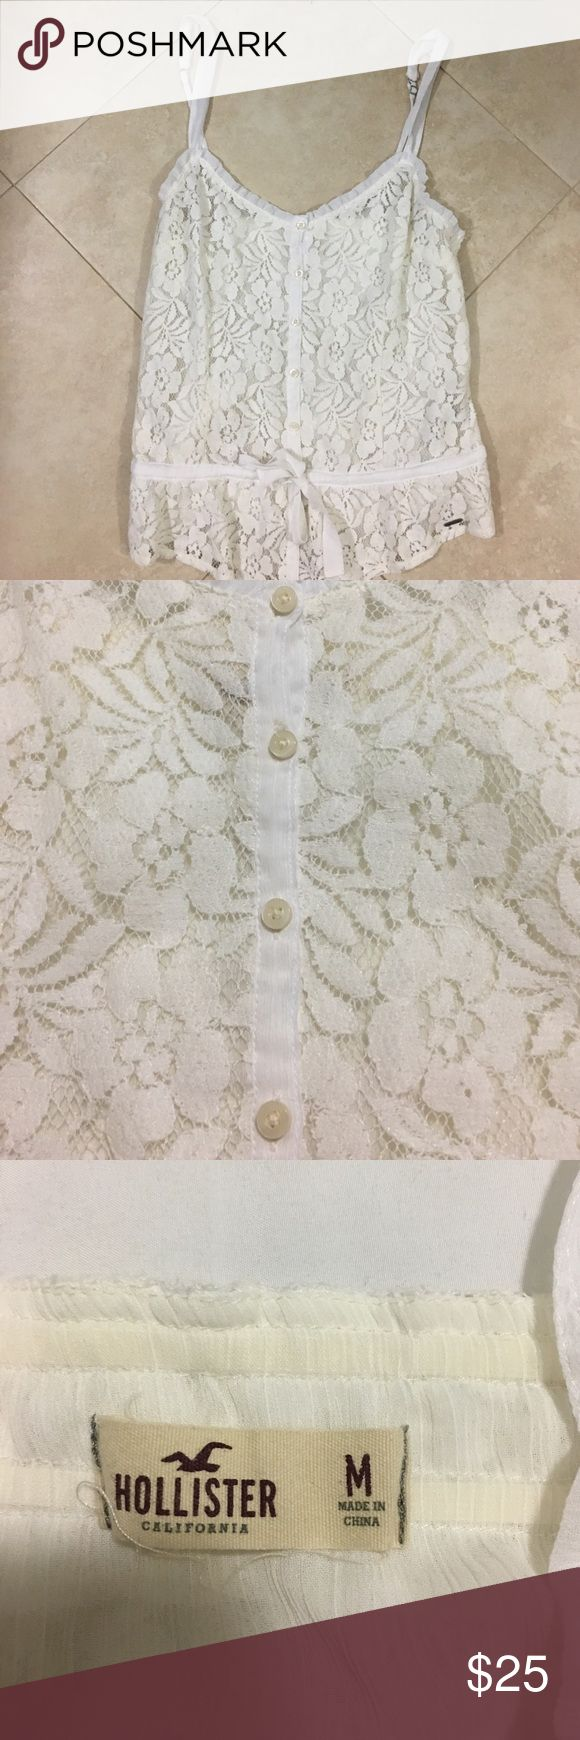 Lace hollister top This couldn't be any cuter! Button up lace Hollister top with tie waist and adjustable straps. It is cream and white. Looks adorable with denim shorts! Worn just once! Hollister Tops Blouses